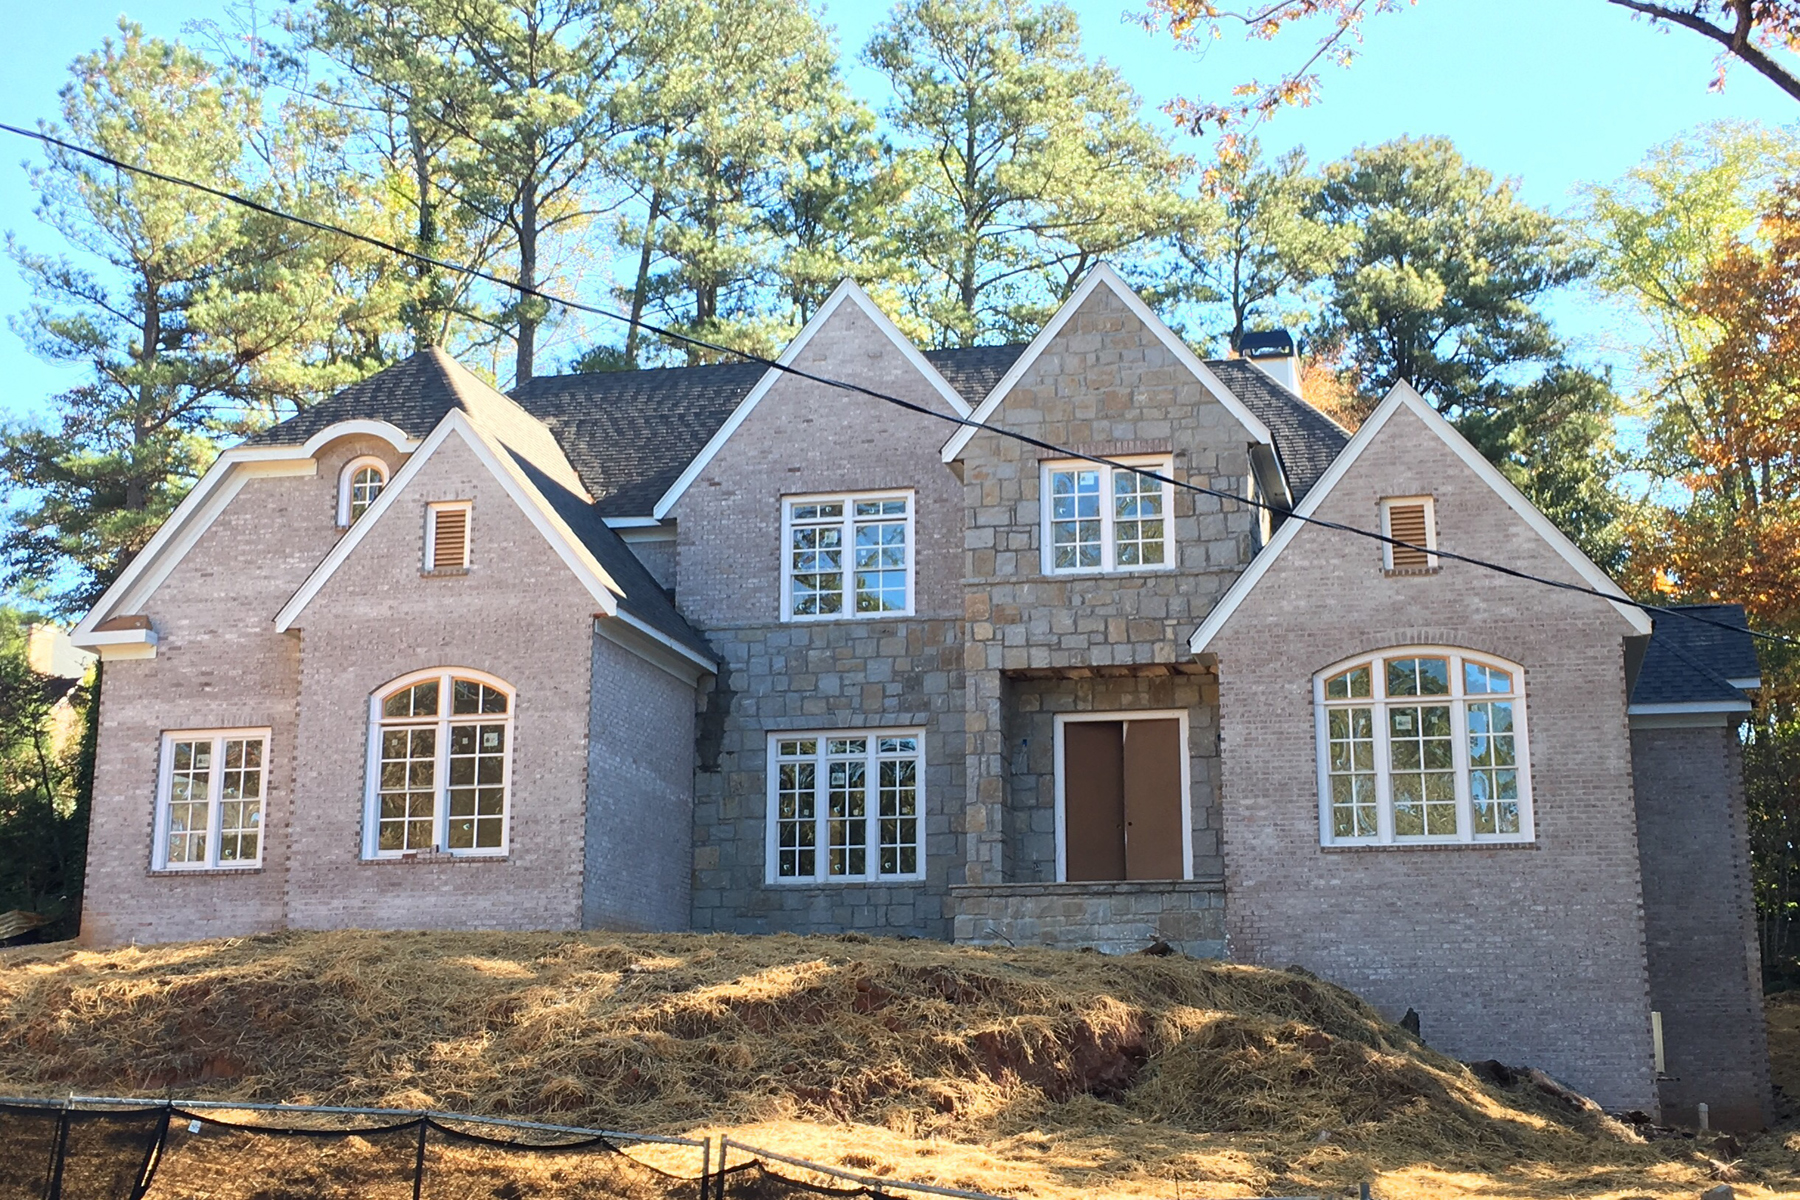 Property For Sale at Chastain Area New Construction